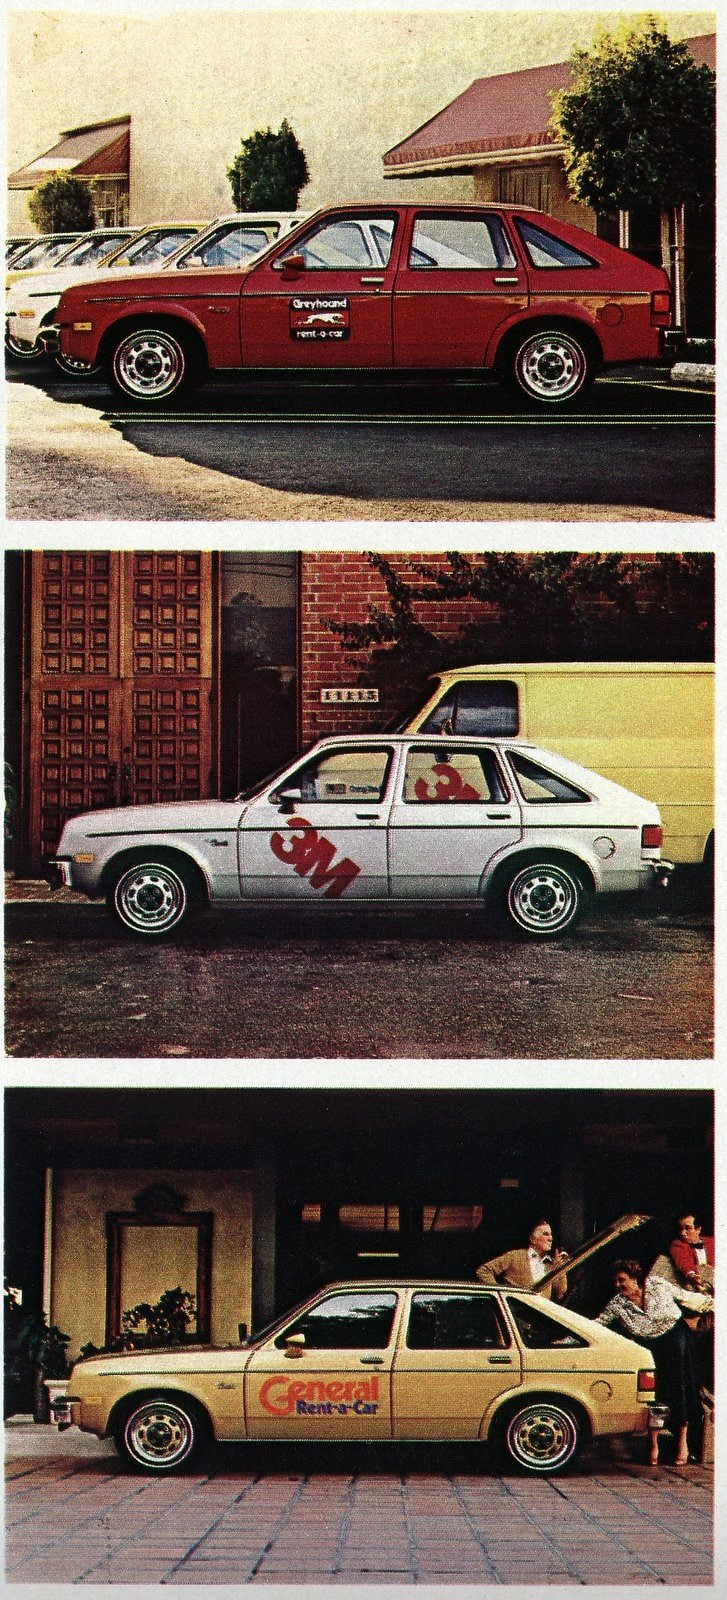 Chevrolet Chevette fleet cars from 1980 (3)